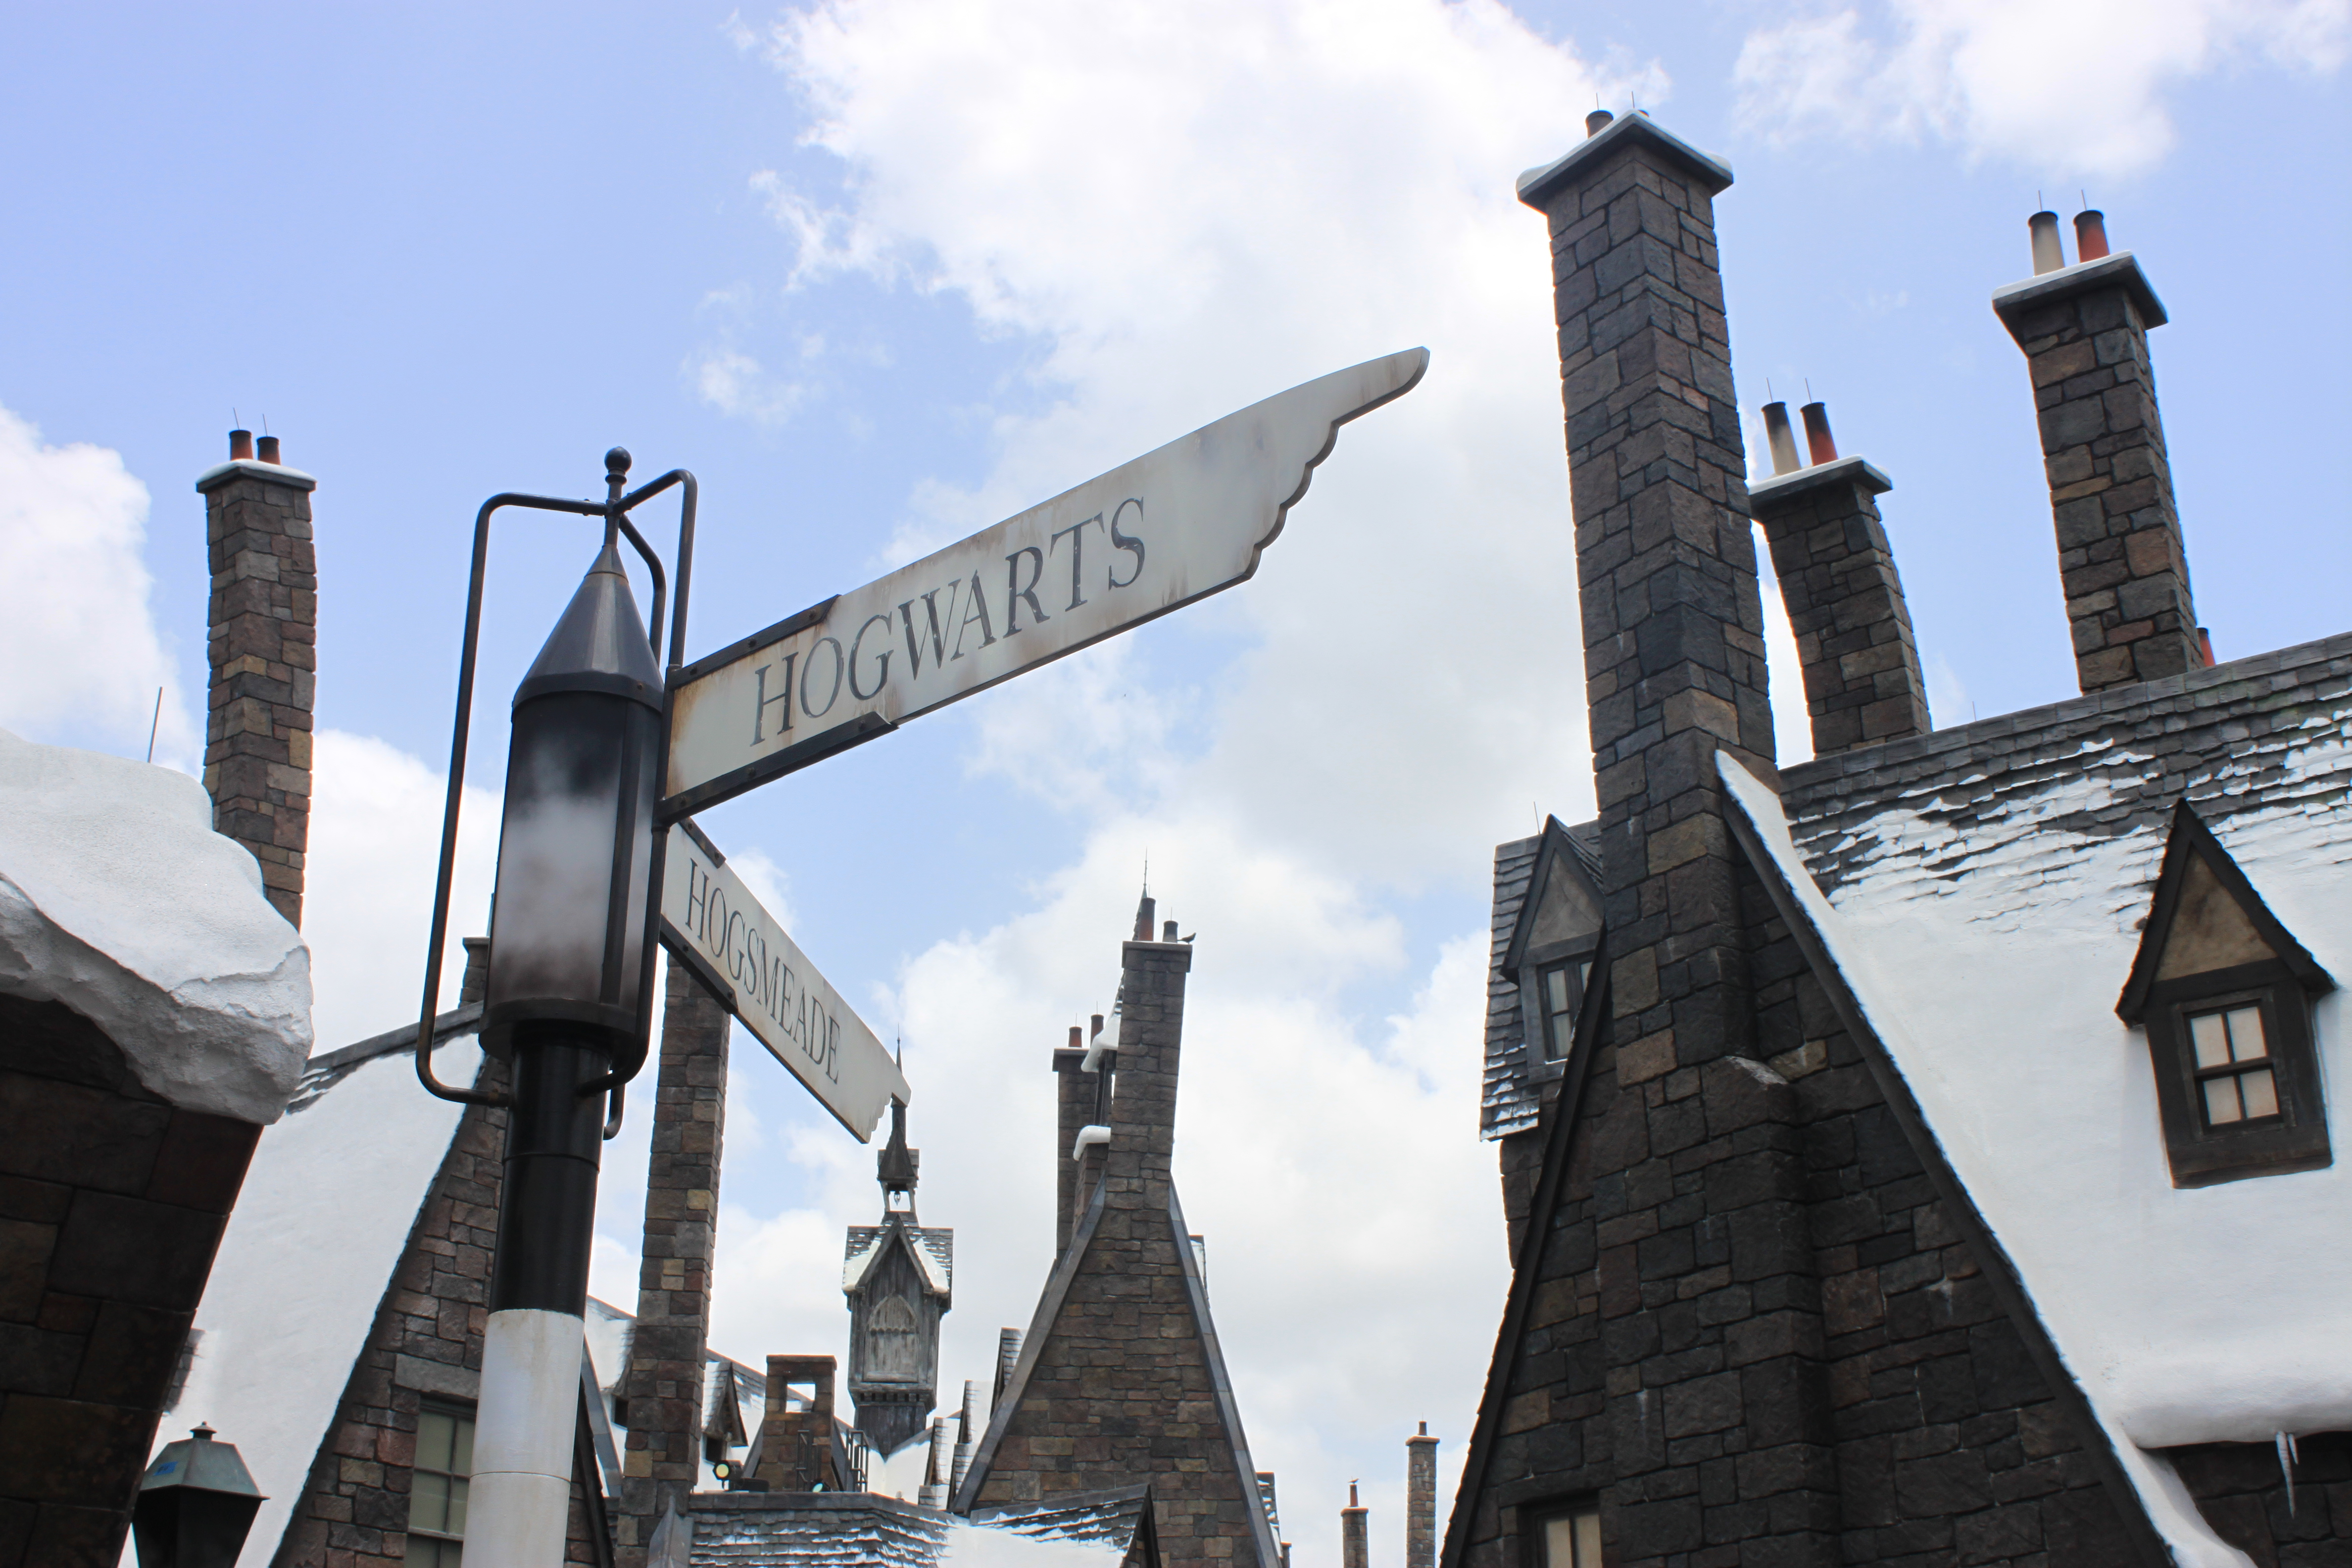 wizarding world of harry potter !